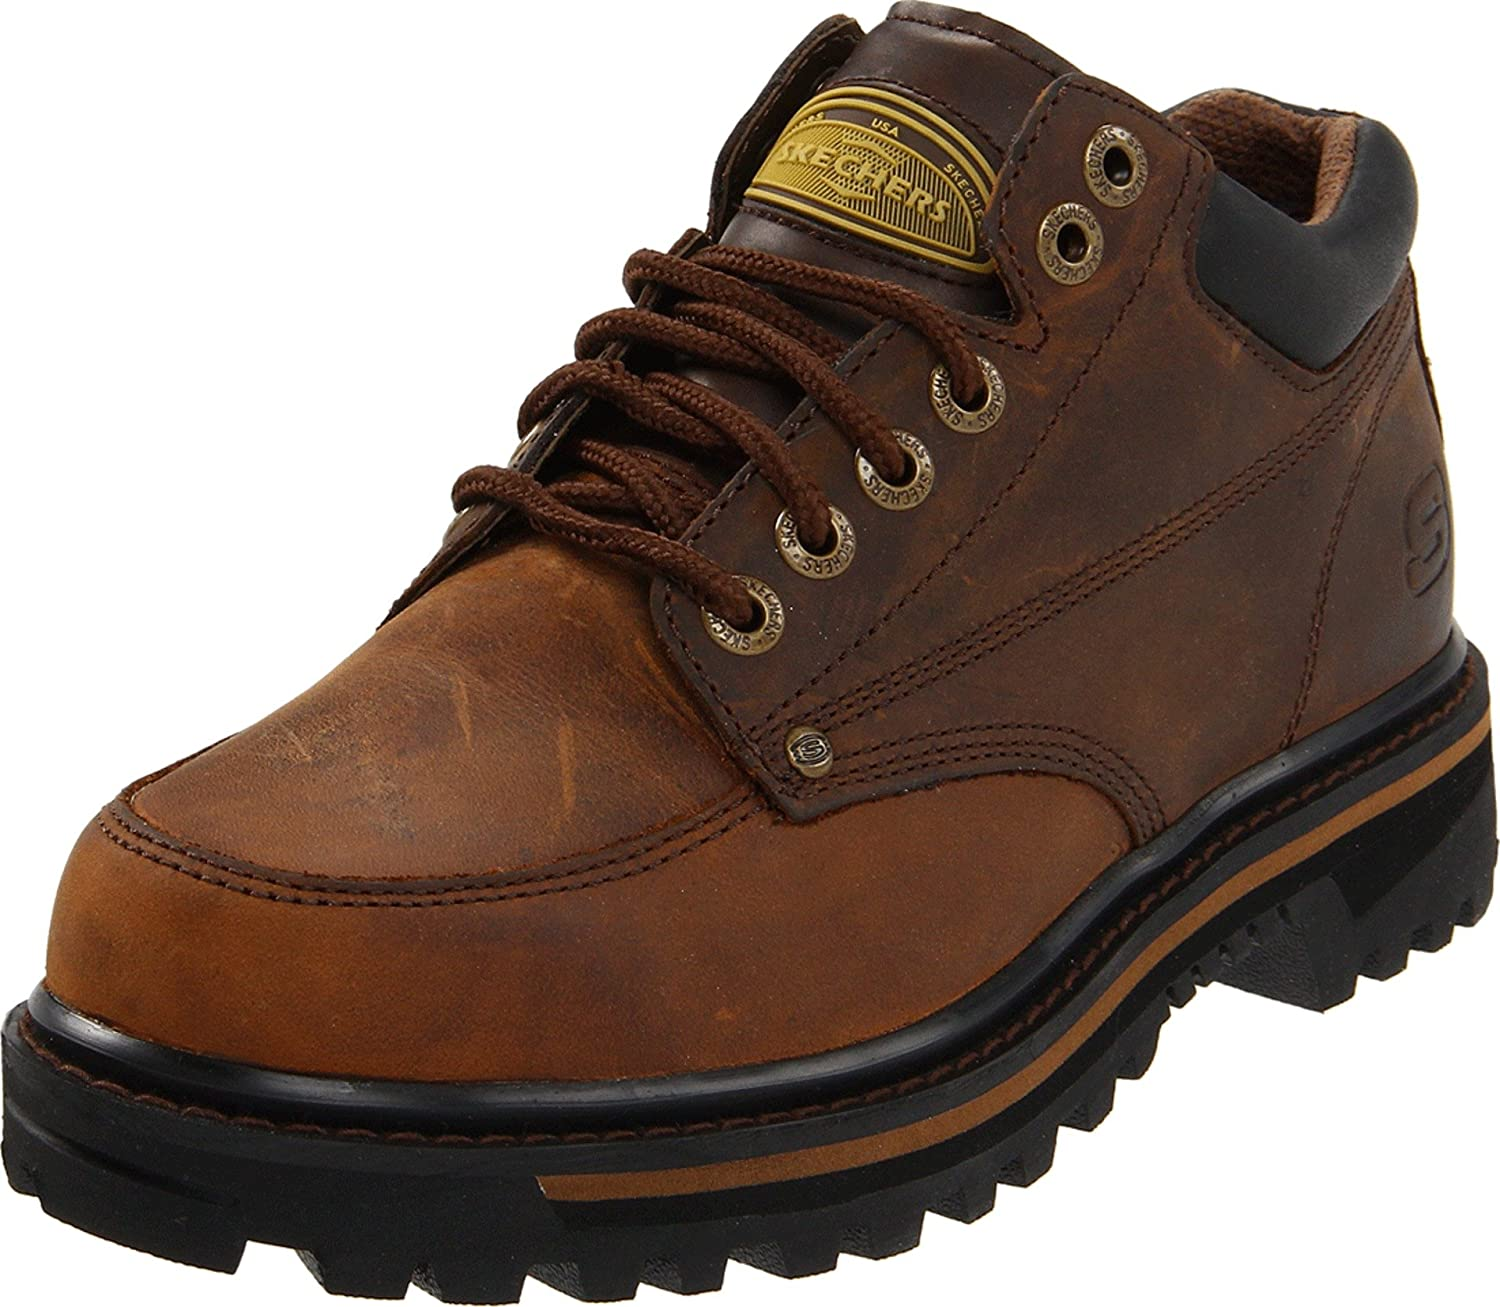 26ae5238fe0af Skechers Men's Verdict Boot: Skechers: Amazon.ca: Shoes & Handbags